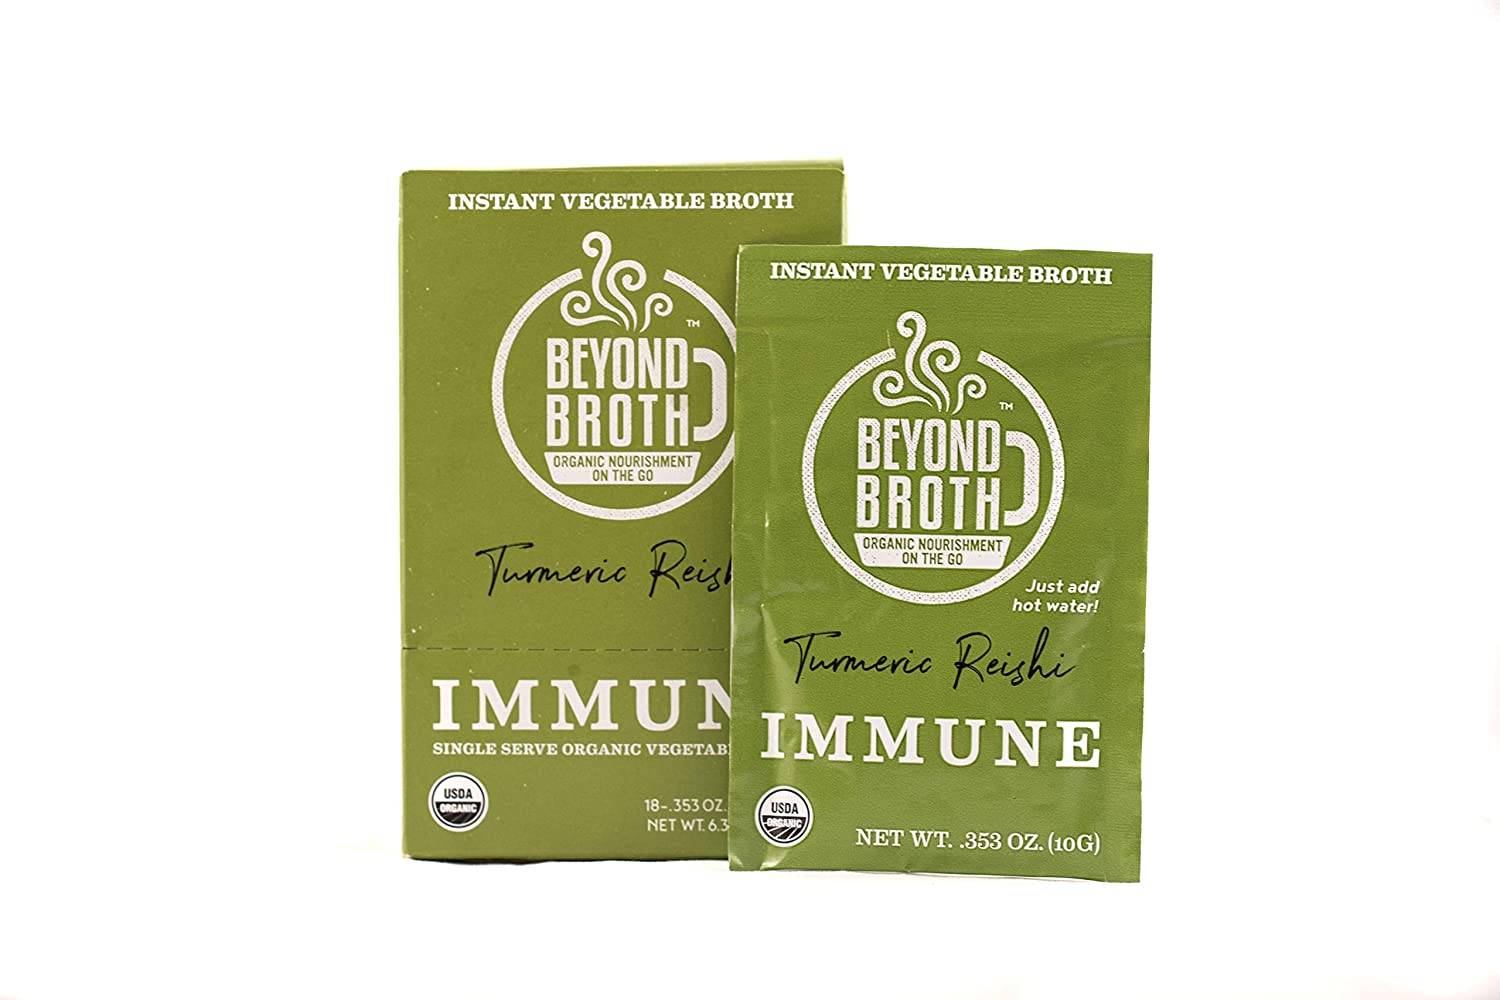 BEYOND BROTH Organic Vegan Vegetable Instant Sipping Broth with Turmeric, Reishi, and Cumin for Immune Support | Keto, Gluten Free, Whole 30, and non GMO | (Immunity) (18 Pack)